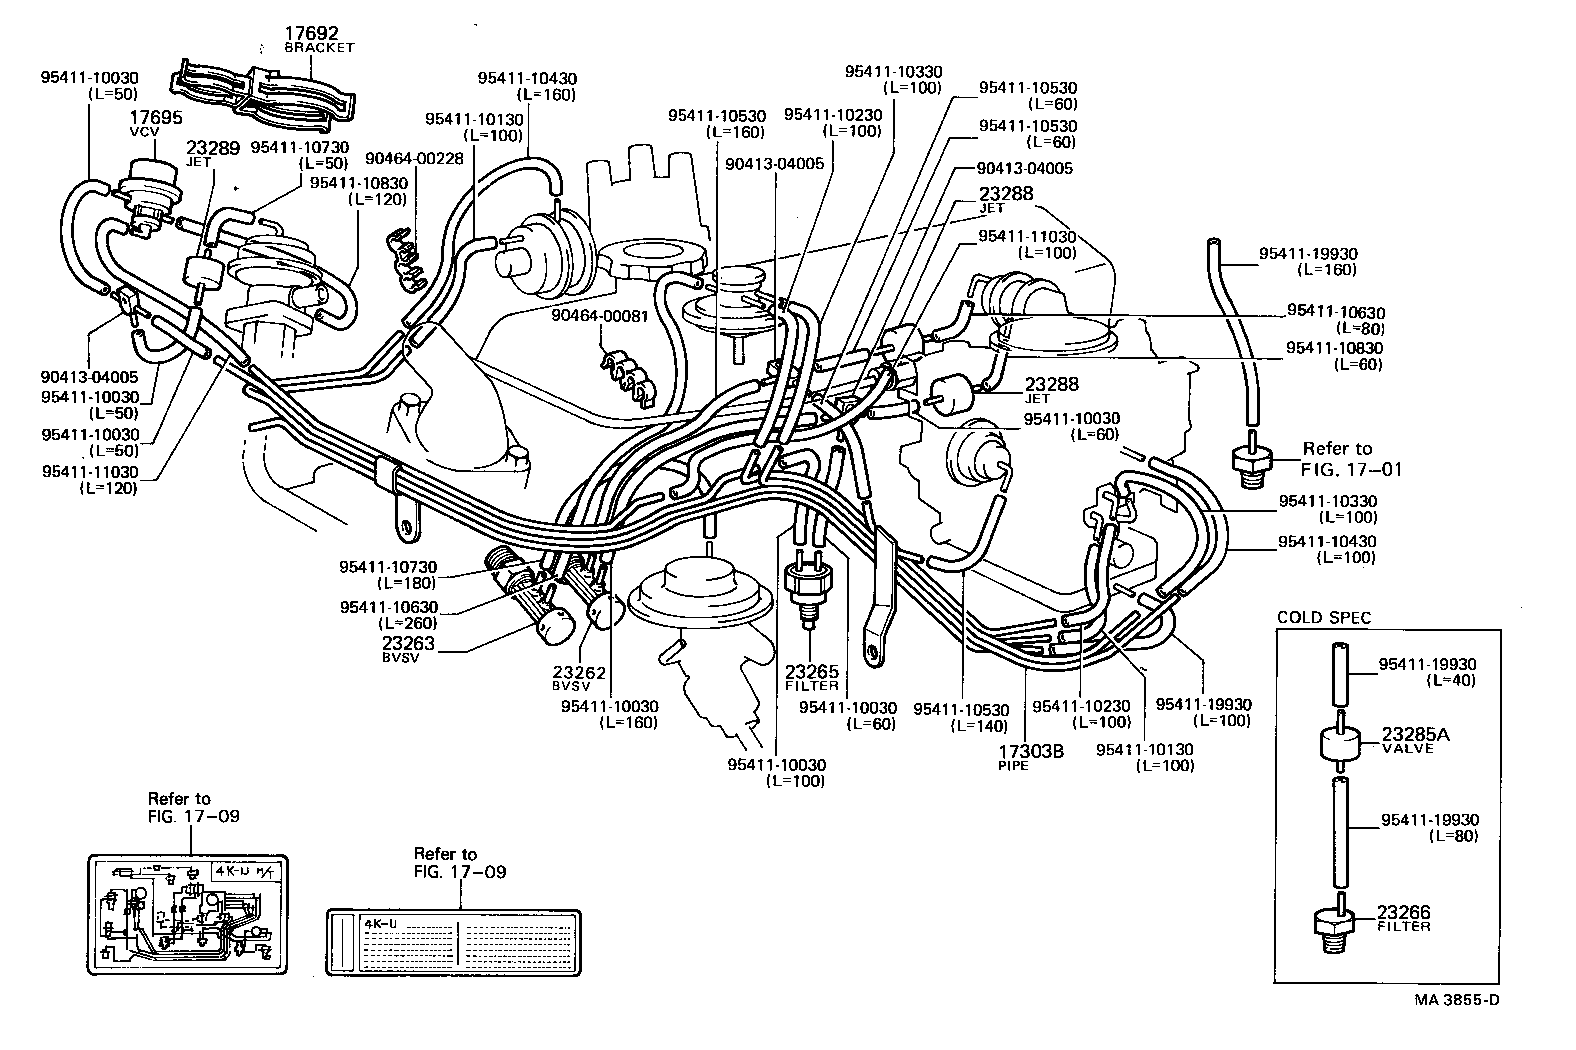 [DIAGRAM] 2009 Toyota Corolla Engine Diagram FULL Version